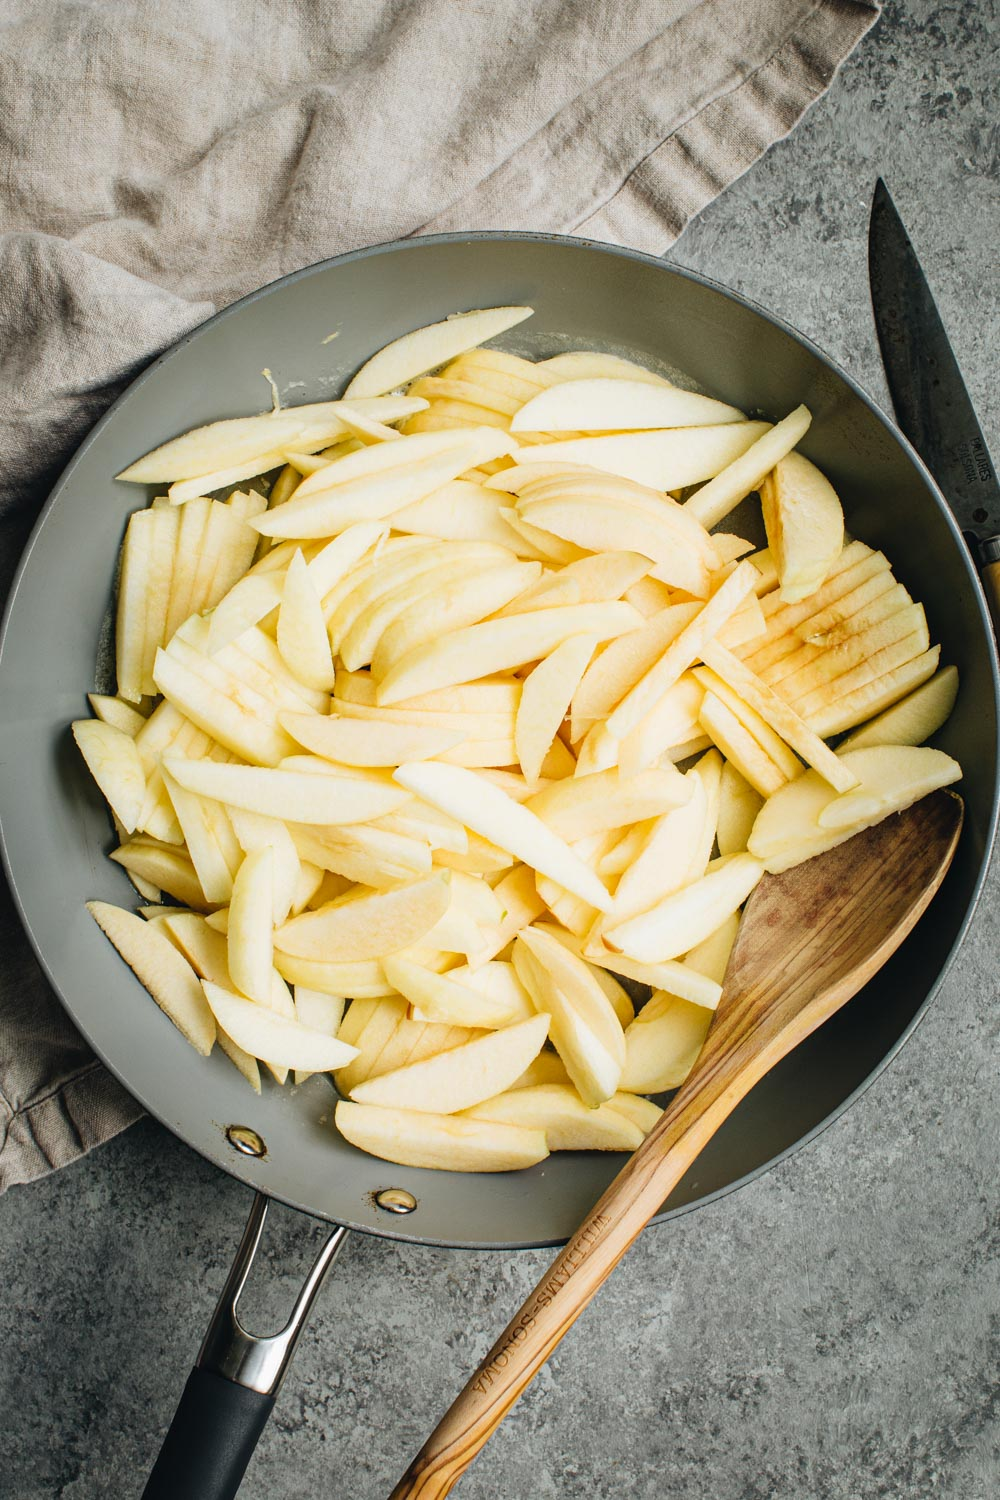 Sliced apples in a skillet with a wooden spatula.